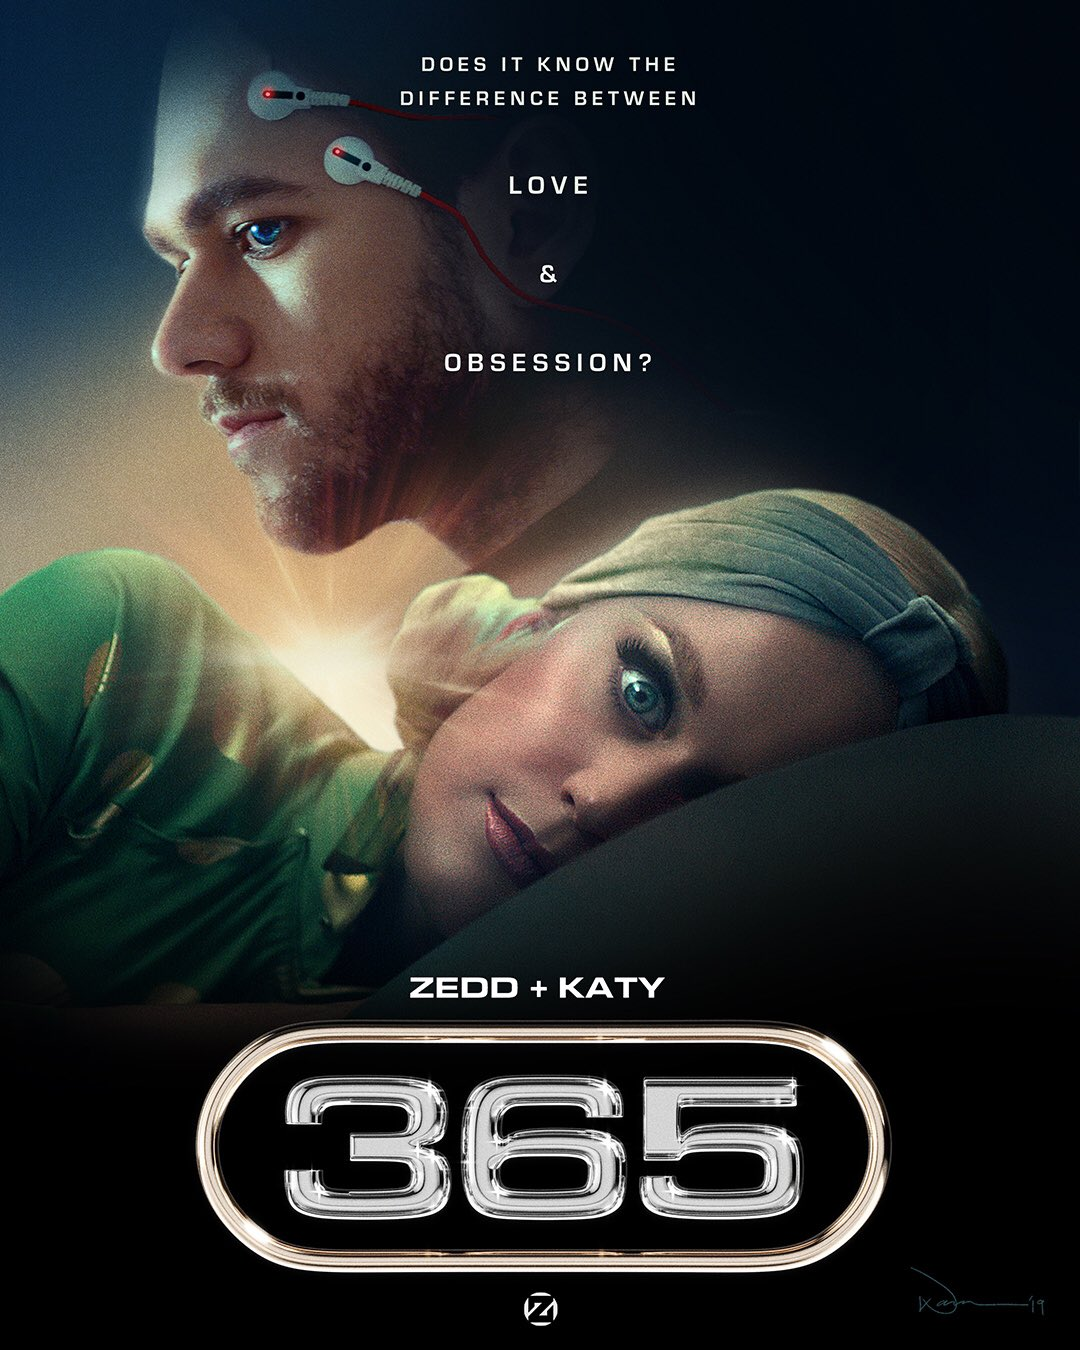 Does it know the difference between LOVE and OBSESSION❓�� ONE HOUR until #365AllTheTime https://t.co/I3yaSNrqAg https://t.co/zZhOIYDTev